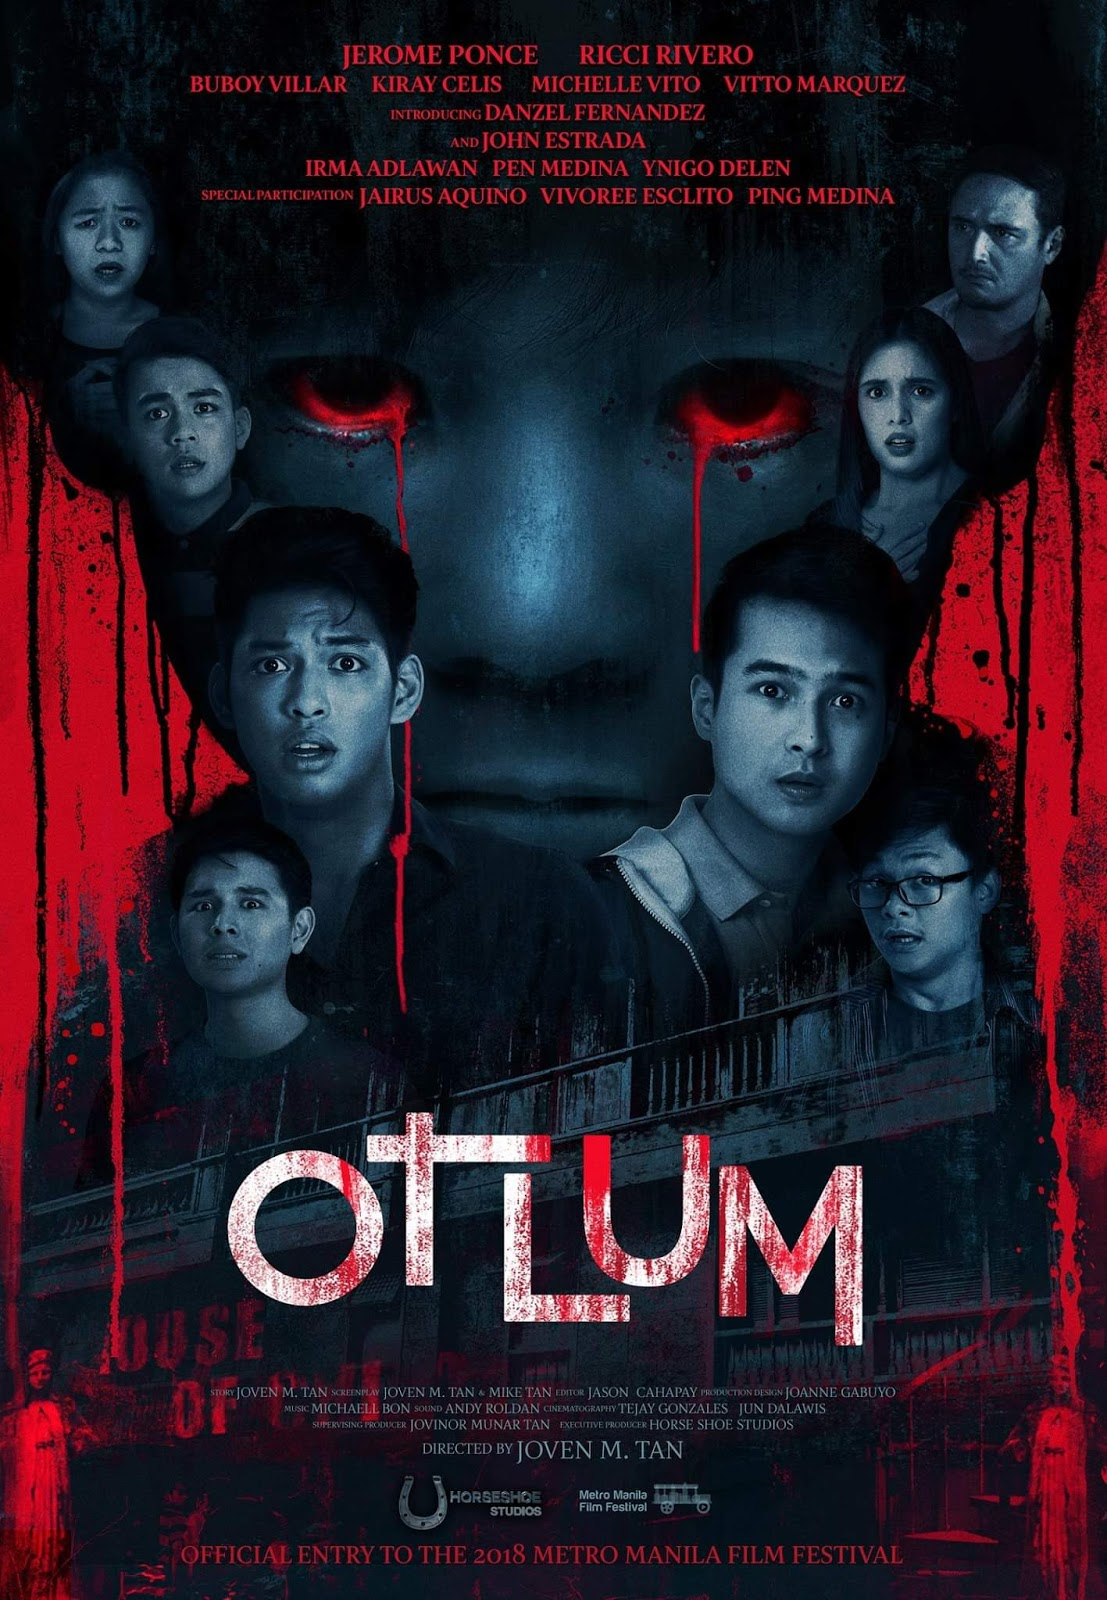 Otlum stars teen stars Ricci Rivero and Jerome Ponce